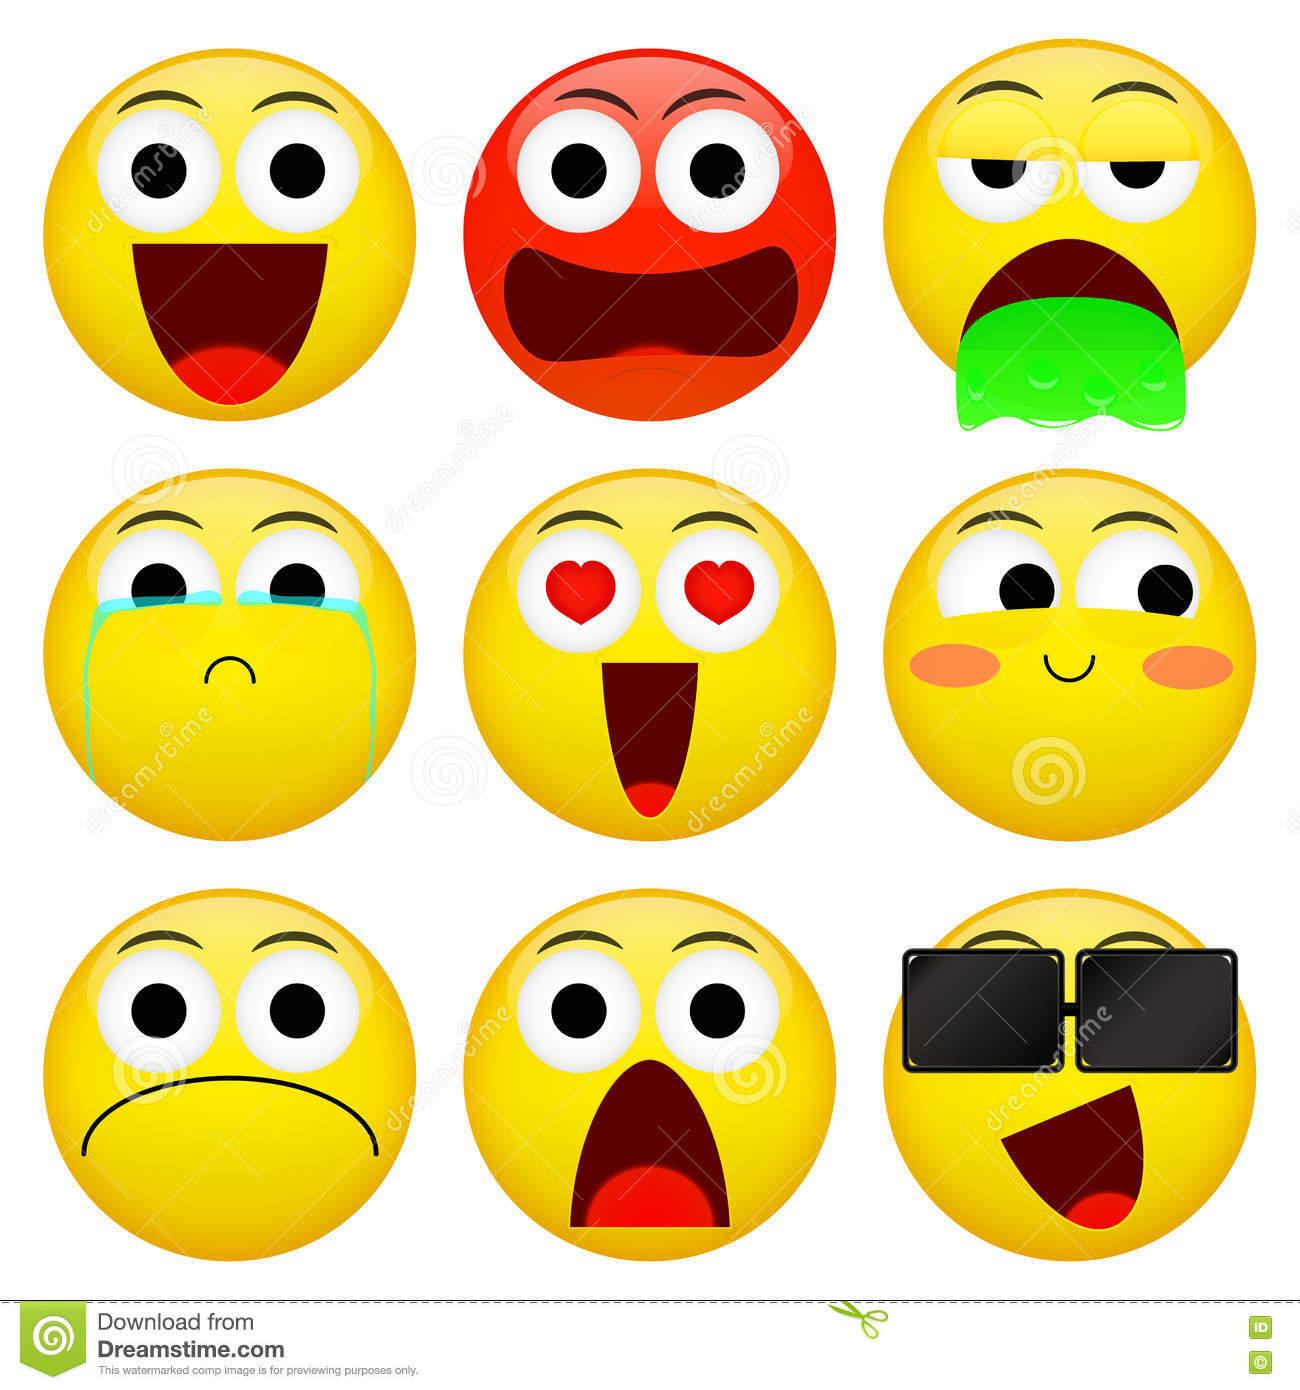 Cool Emoticons additionally 389983648964096341 together with Emoticon Emoji Looking Very Scared Peeking 315068597 moreover Drawn 20light 20bulb 20animated additionally Shock Face Emoji. on cartoon smiley shock